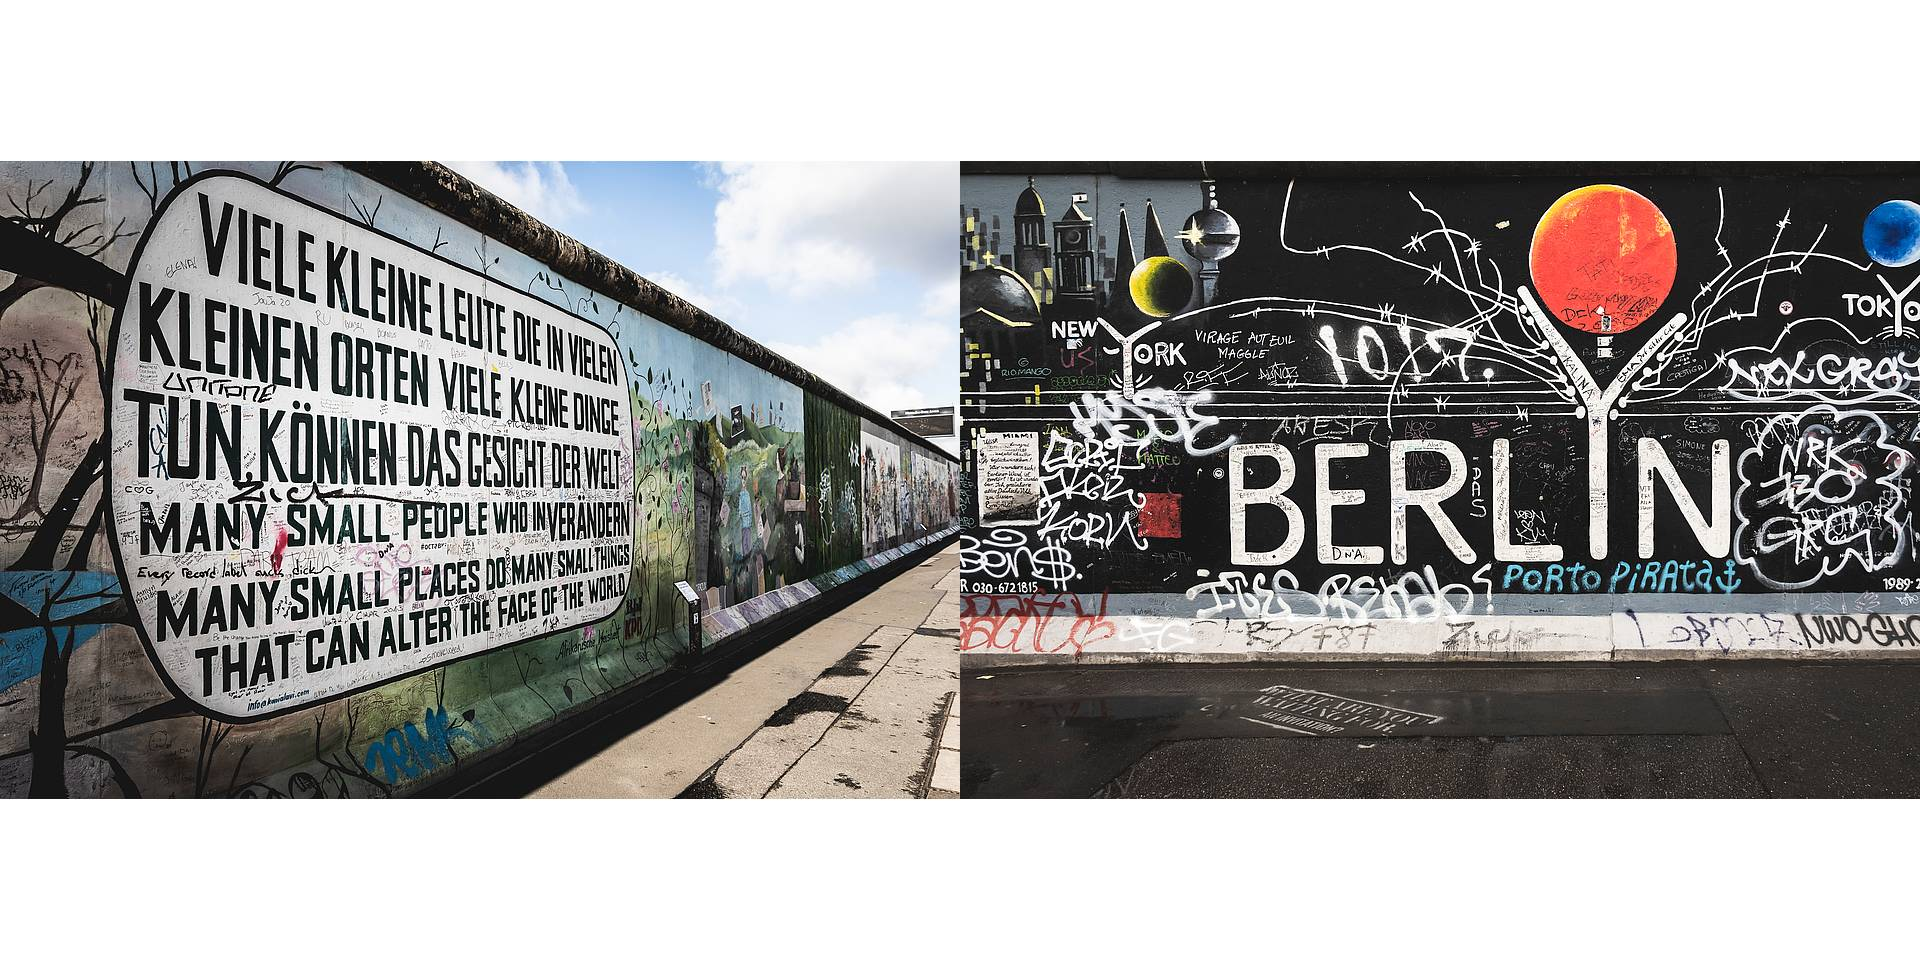 Live your Life - Descubre Berlín - East Side Gallery